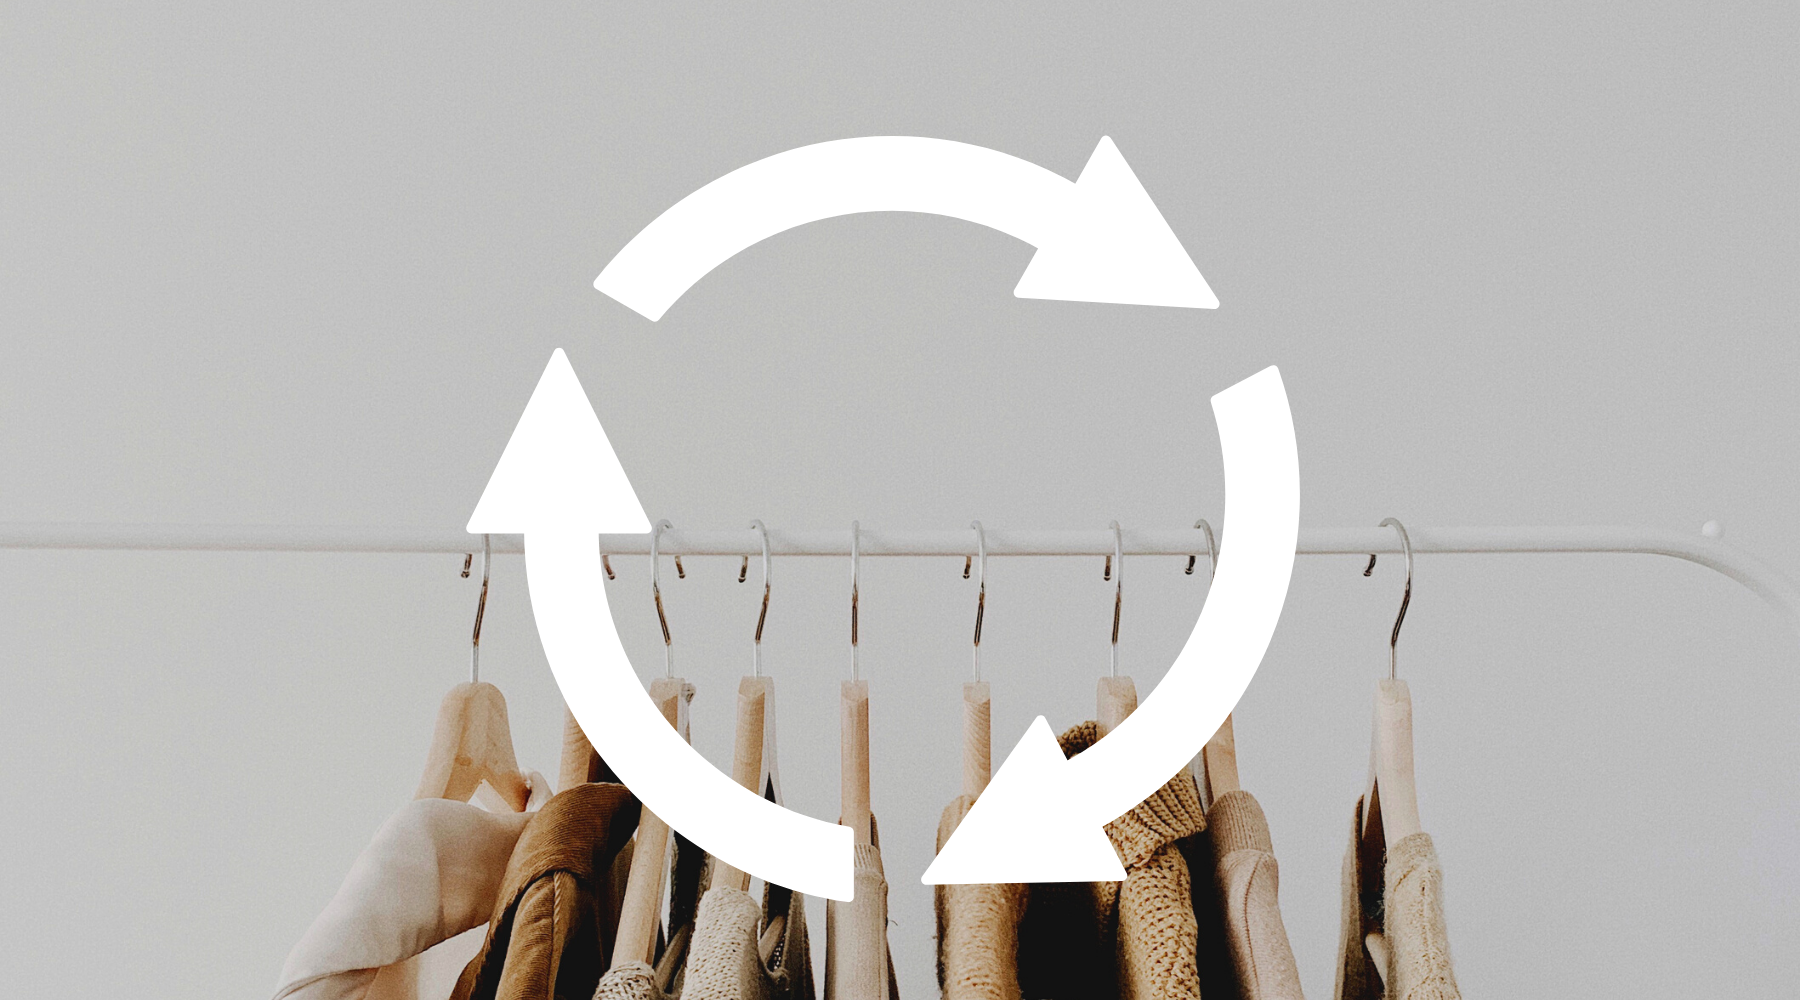 clothing rack with clothing on it, with recycling sign laid over top